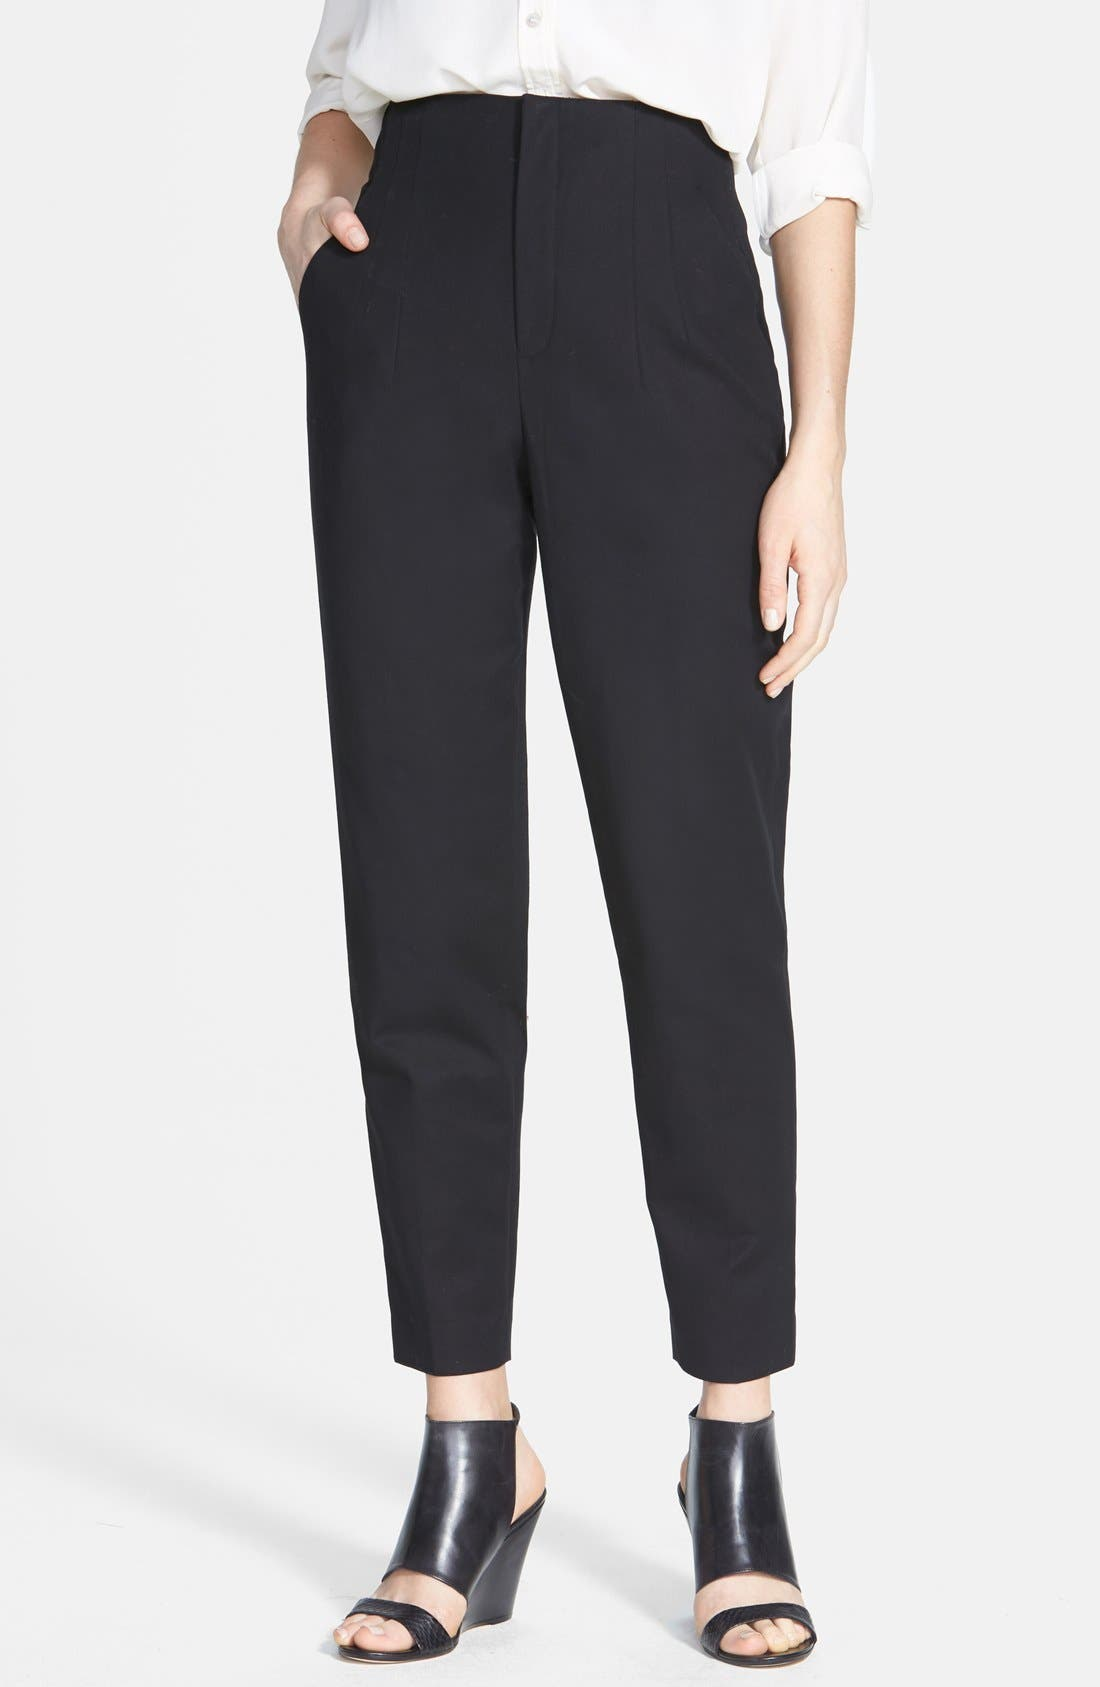 Alternate Image 1 Selected - Vince Camuto Crop Stretch Cotton High Waist Pants